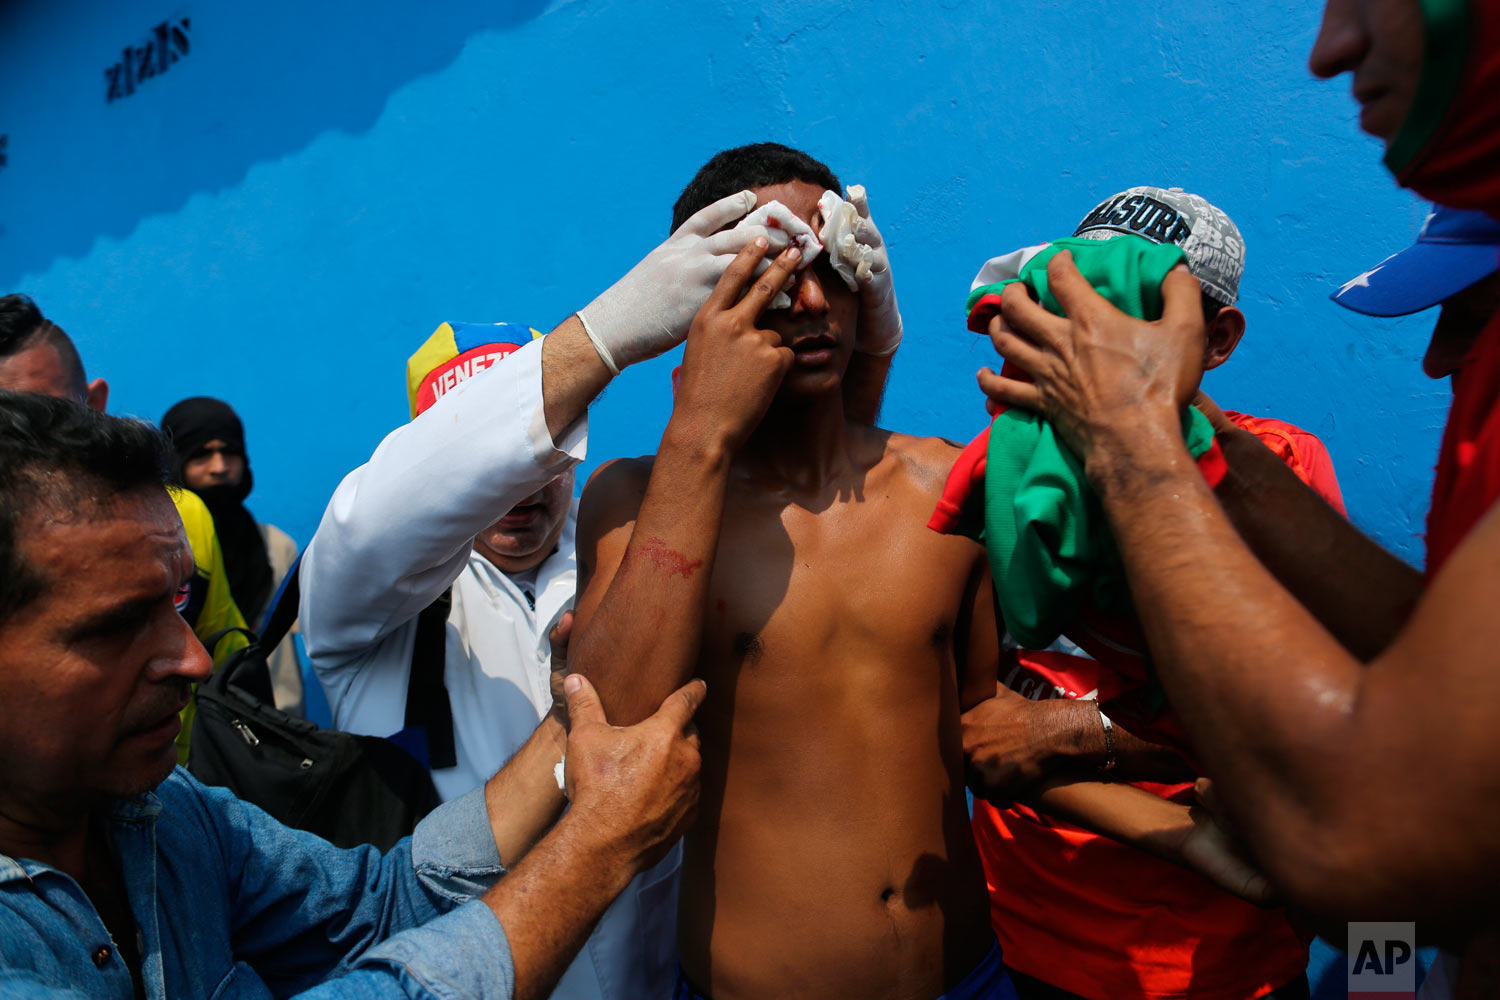 A demonstrator is given first aid after he was injured in the face during clashes with the Venezuelan Bolivarian National Guard in Urena, Venezuela, near the border with Colombia, Saturday, Feb. 23, 2019. (AP Photo/Rodrigo Abd)